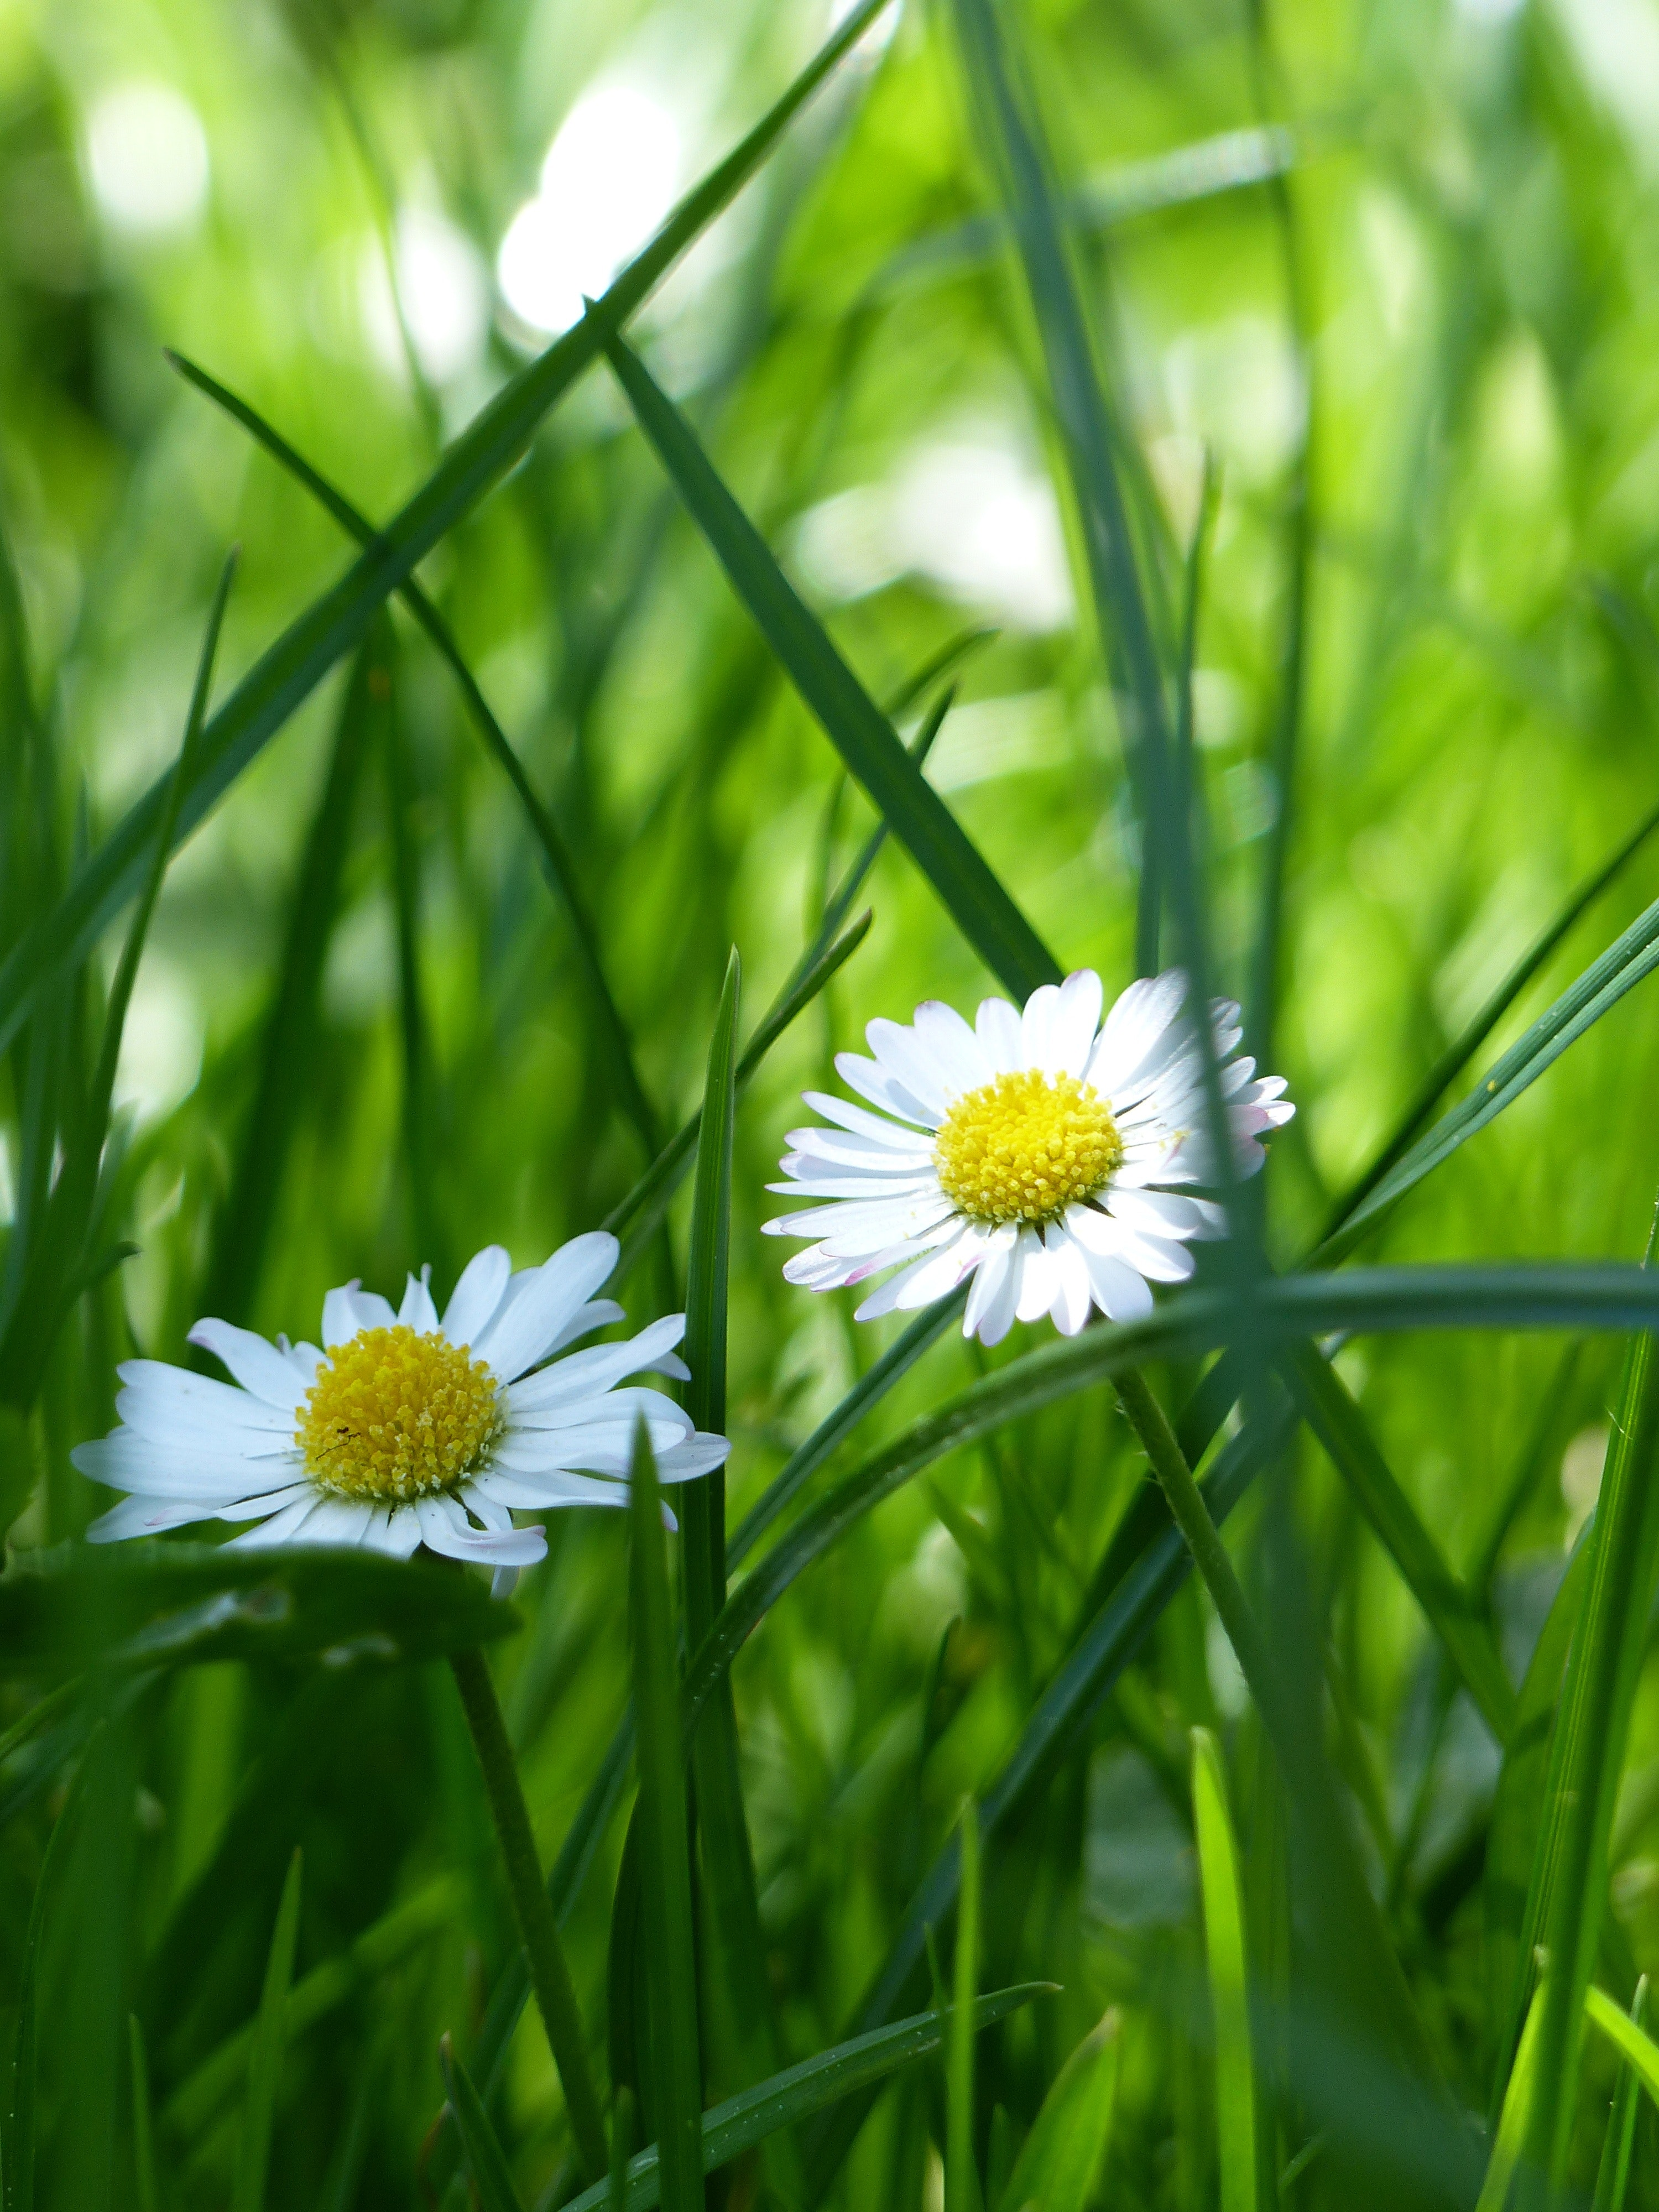 Yellow and white flower surrounded by green grass photo